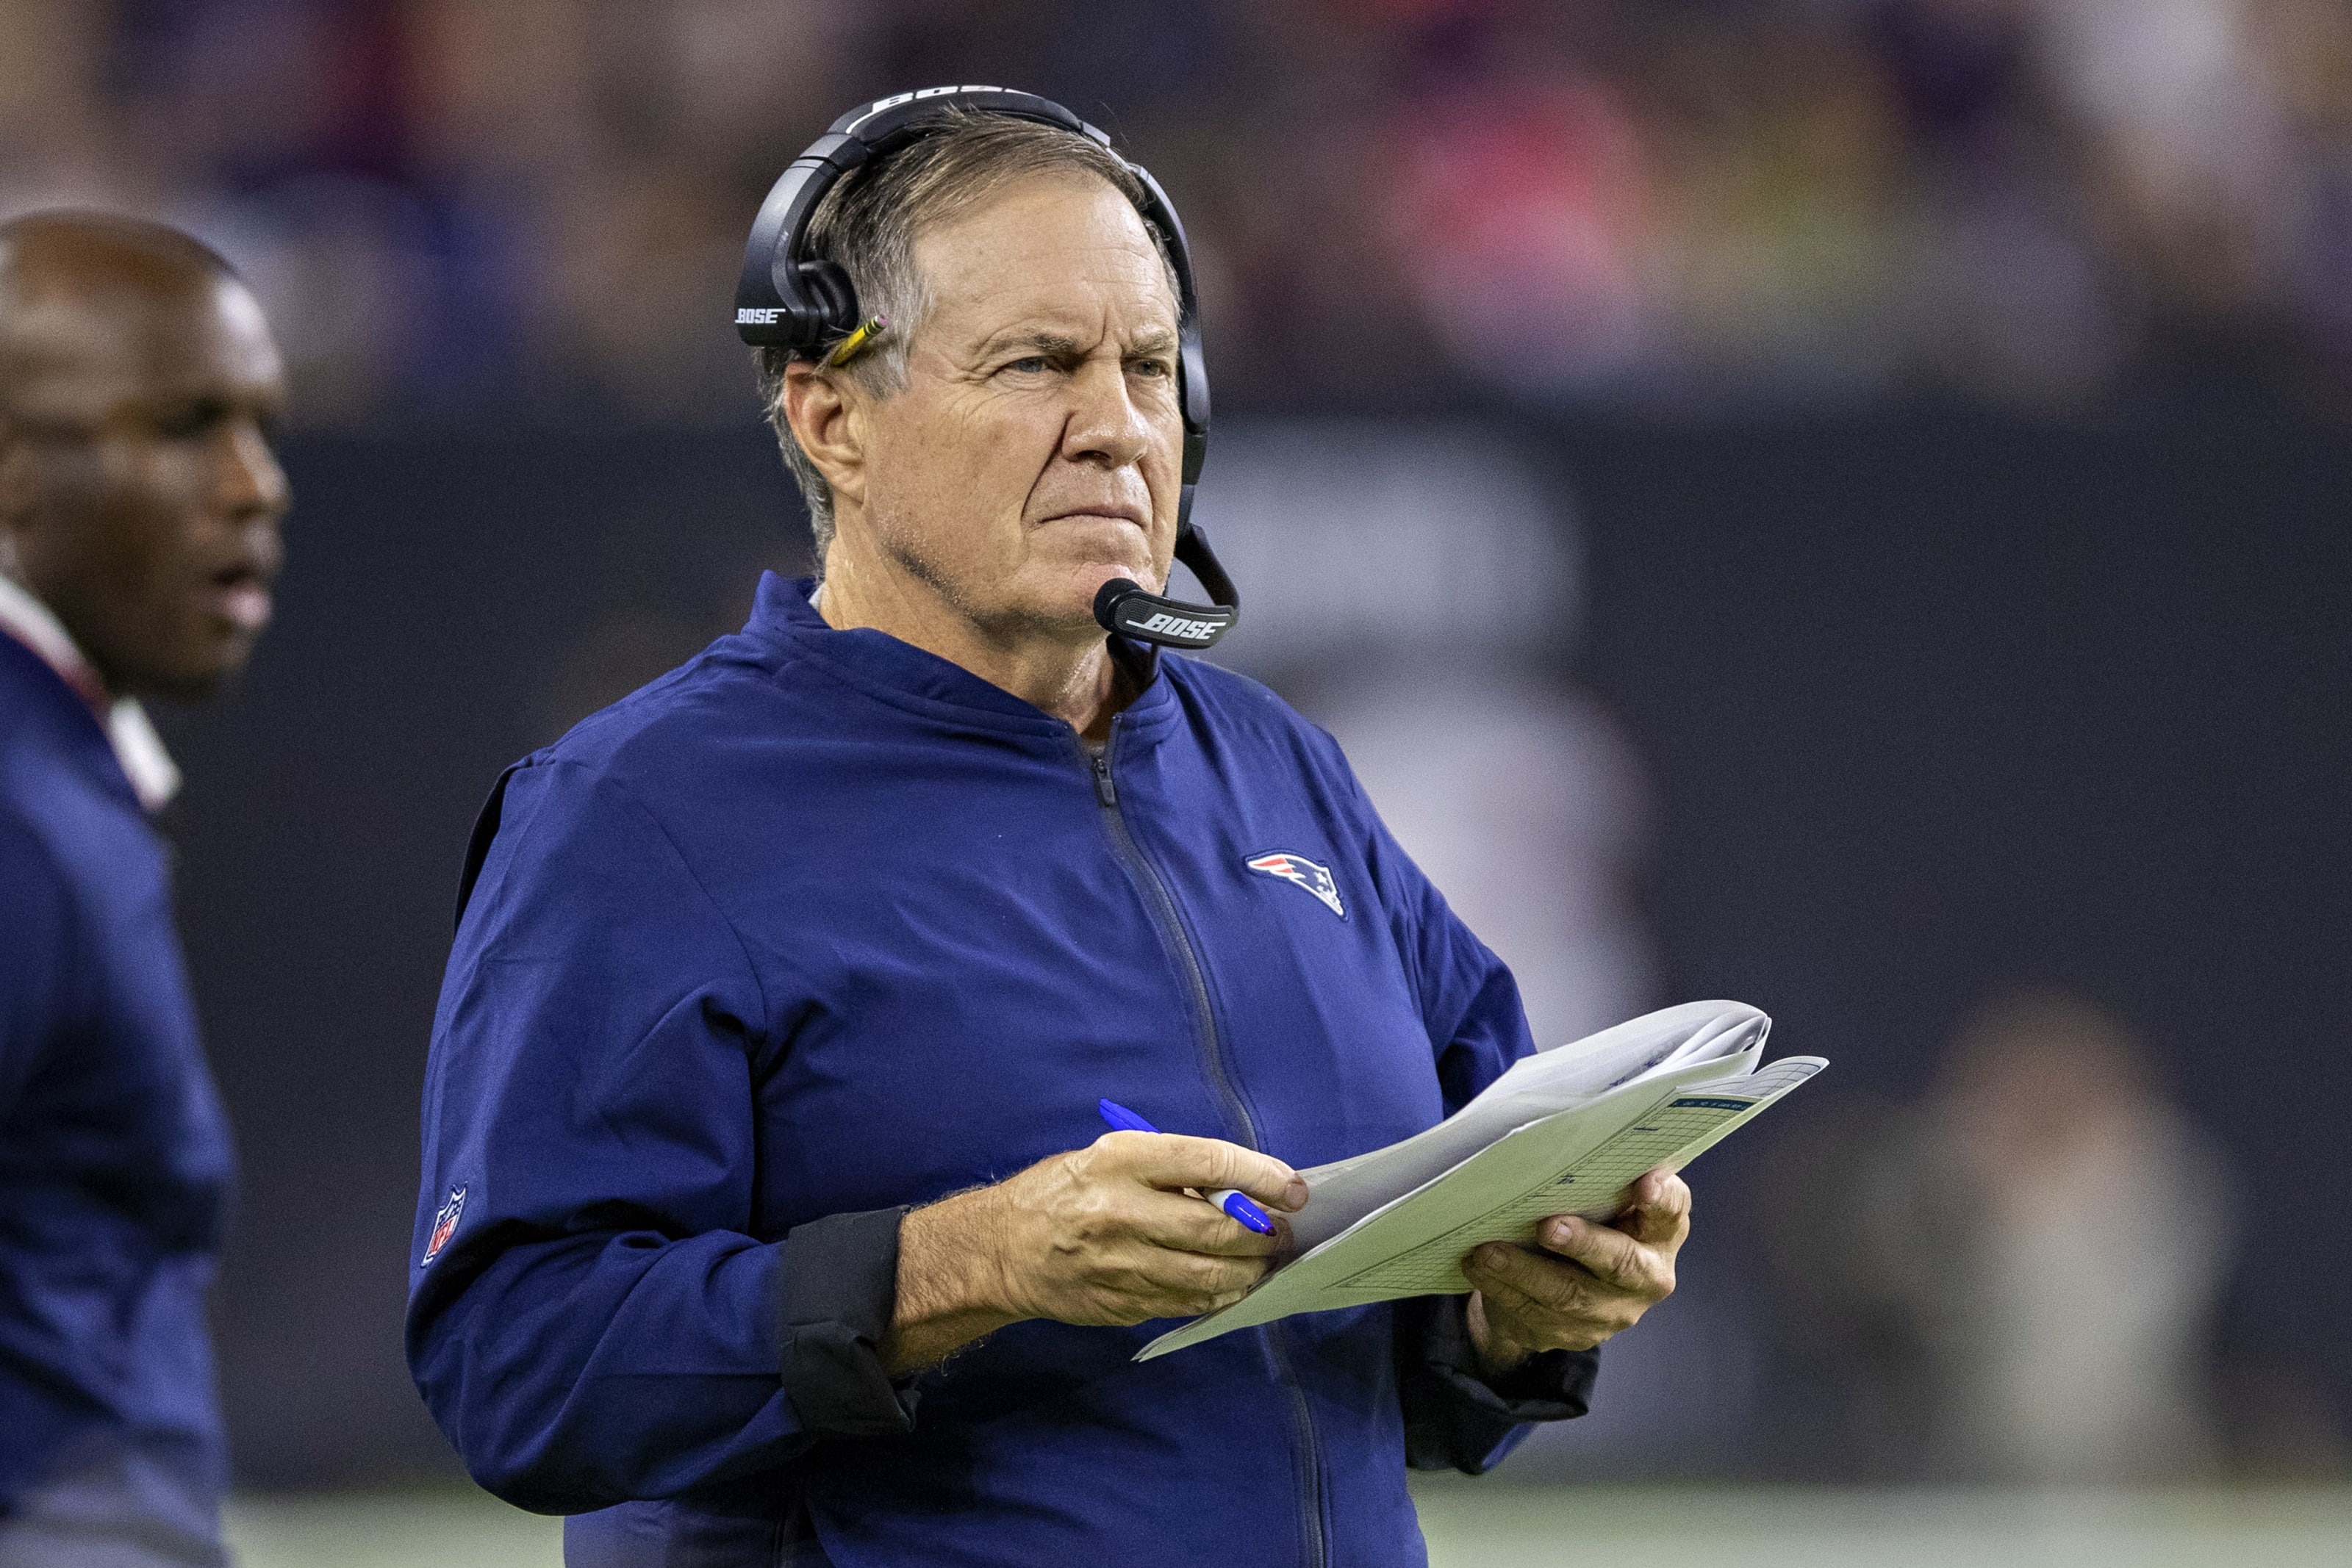 Patriots loss increases chances of Bill Belichick return to NY Giants